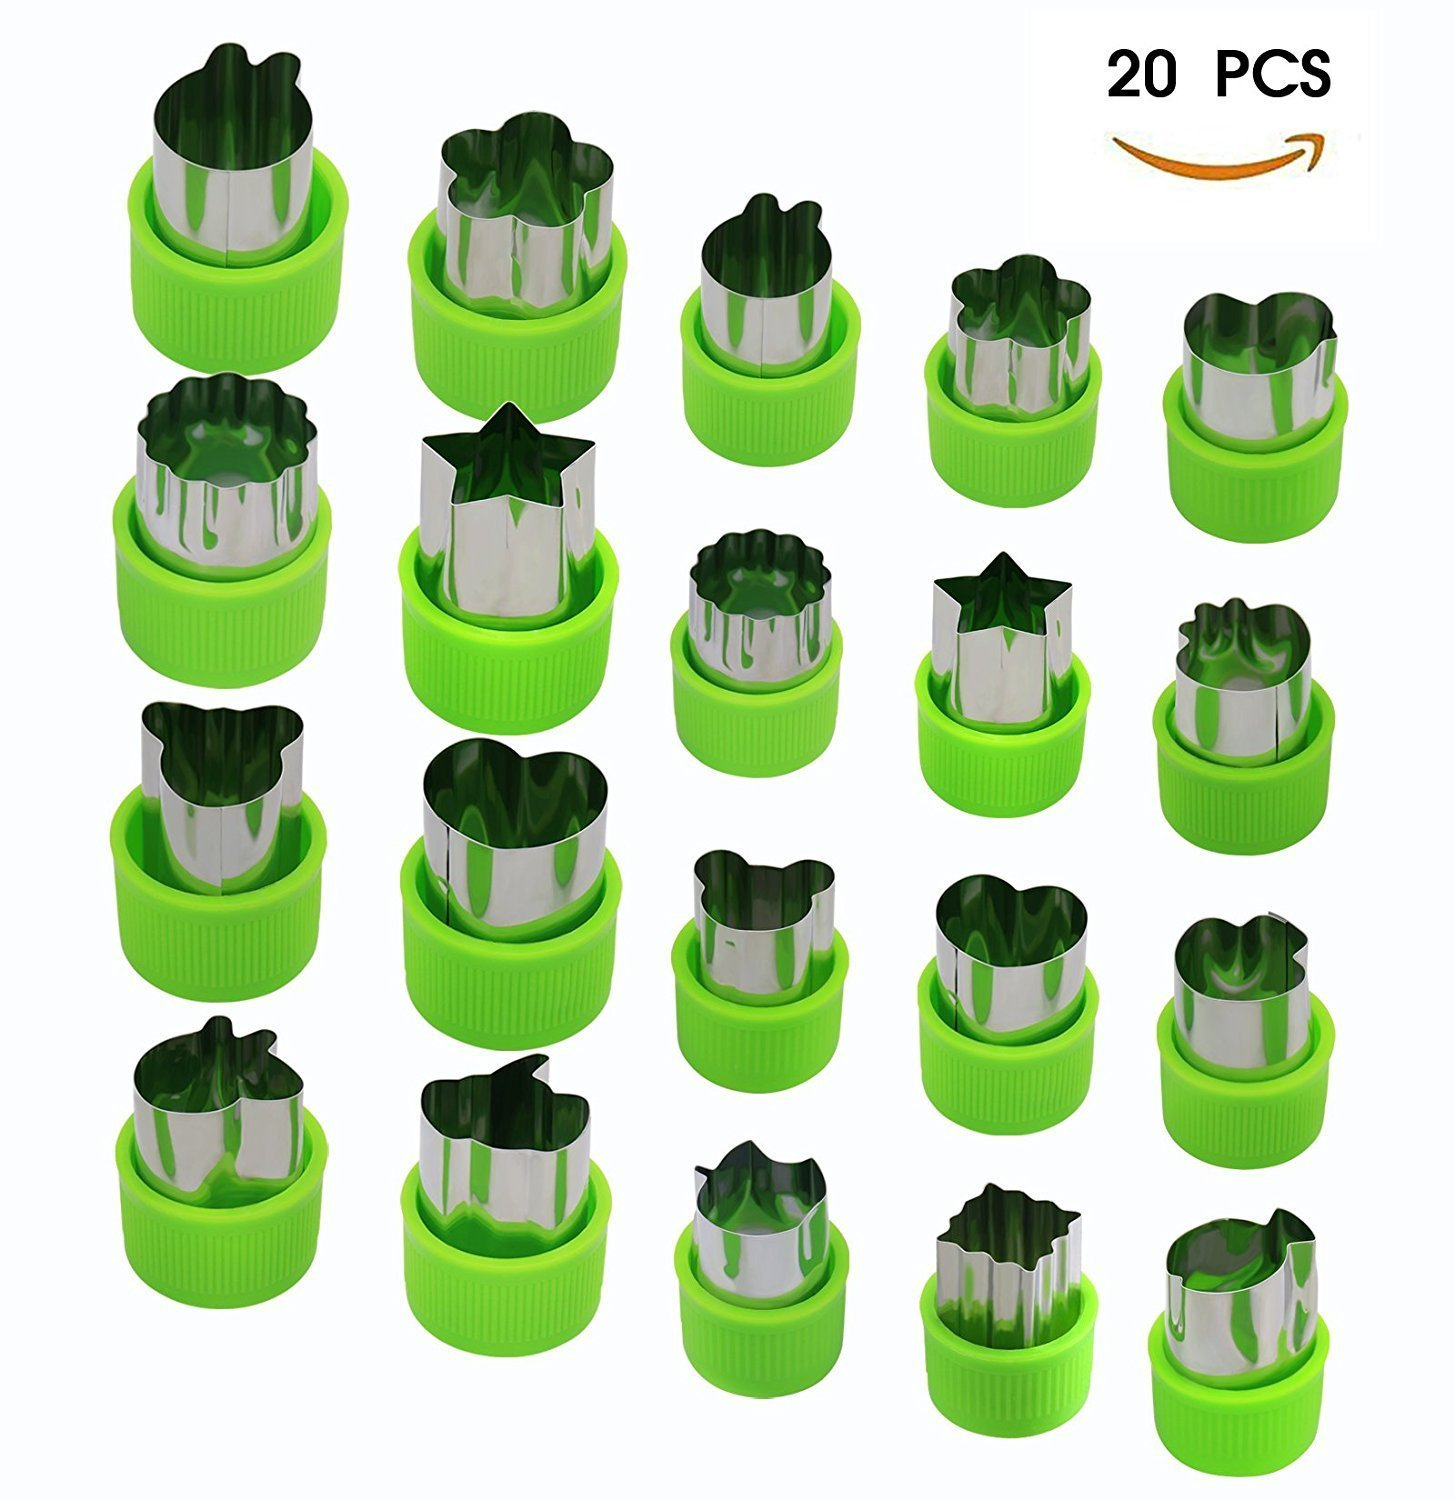 Joyoldelf Vegetable Cutters Set (20 Pcs), Stainless Steel Fruit and Cookie Cutter Shapes Cheese Presses Mold with Anti-Slip Protection Handle, for DIY Fun Food & Decoration